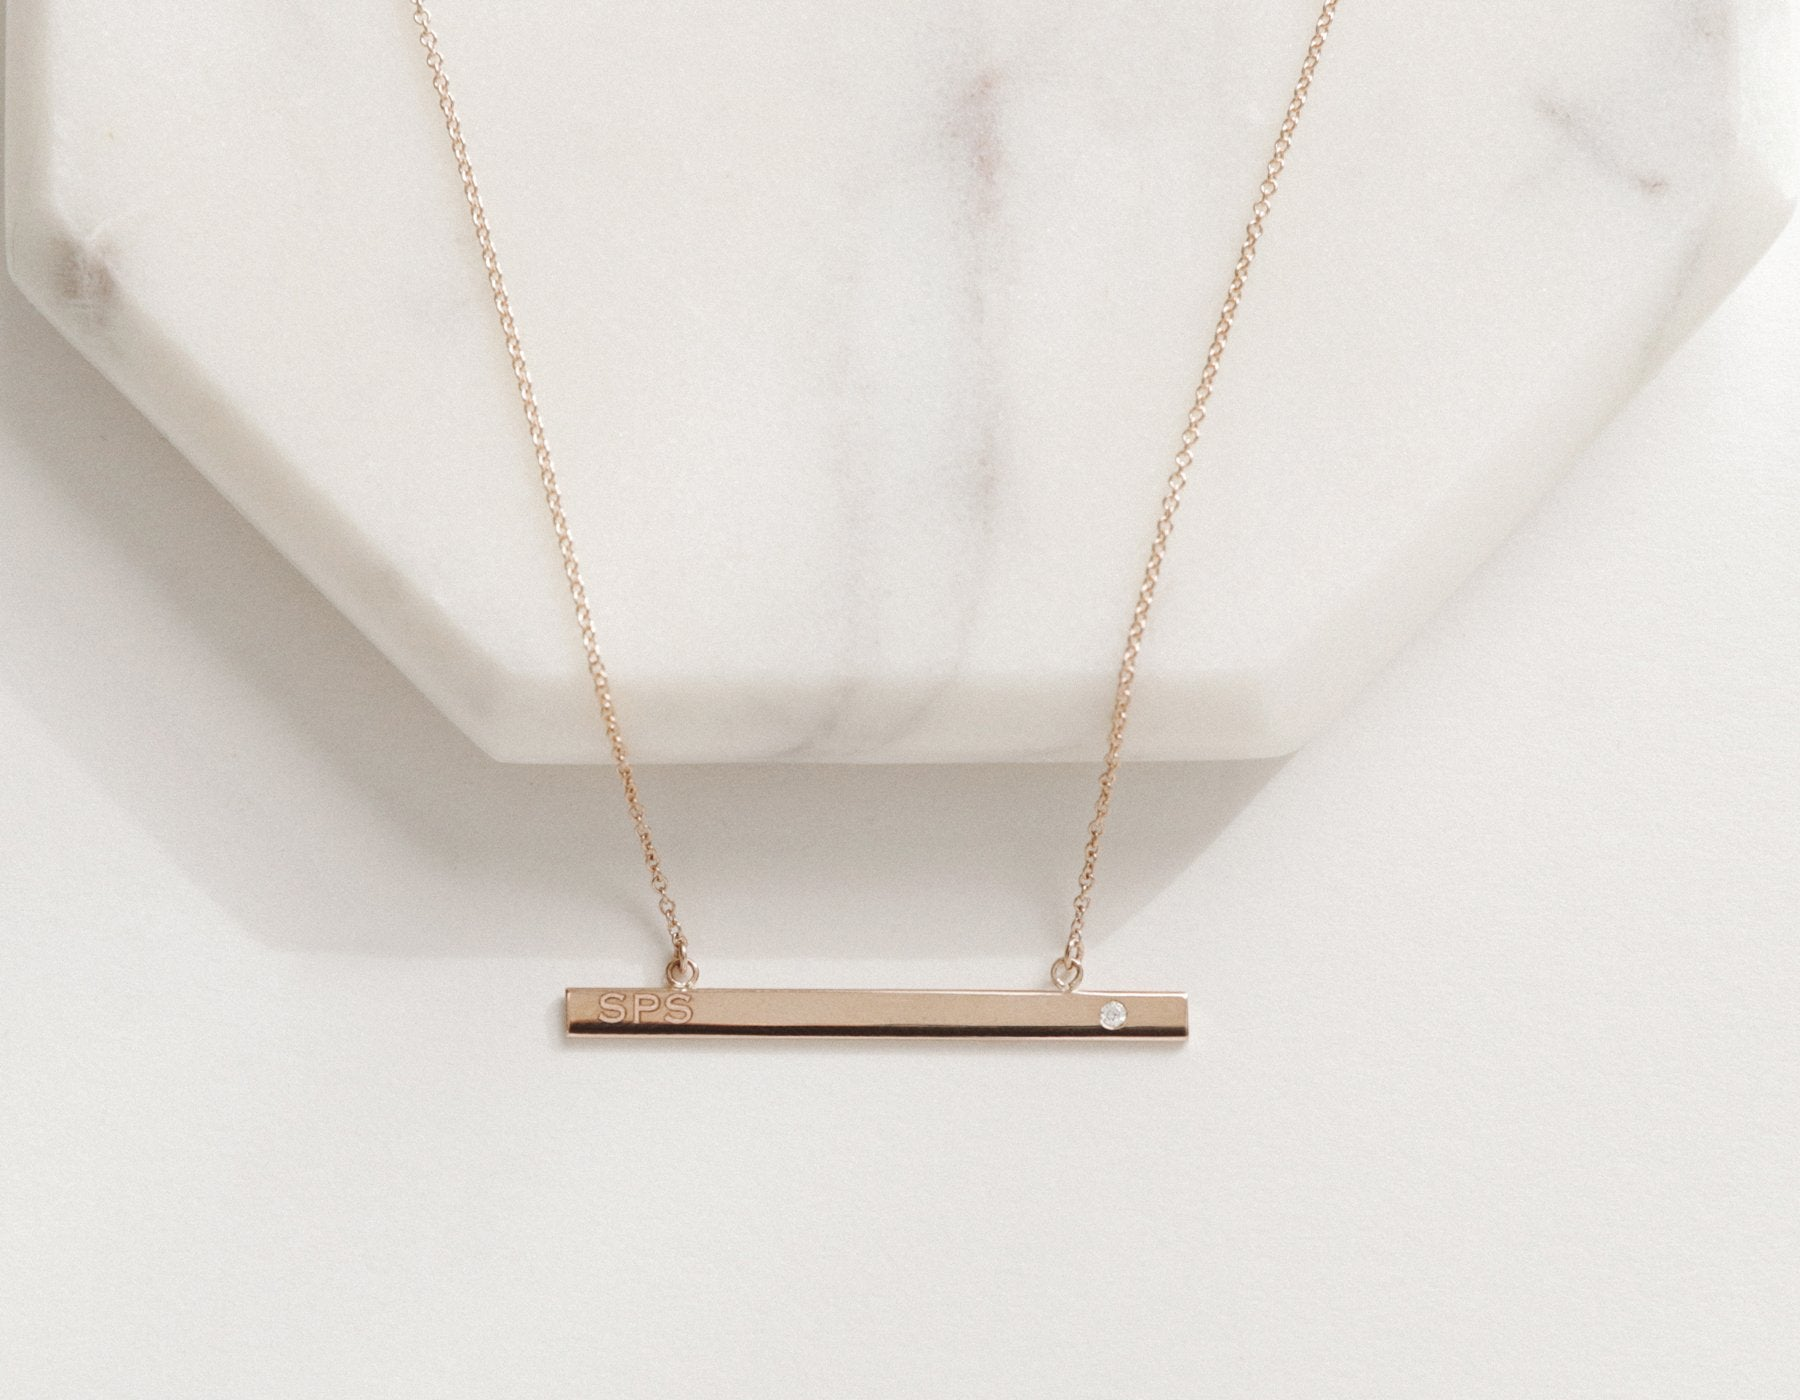 Vrai & Oro Personalized Bar Necklace with a diamond